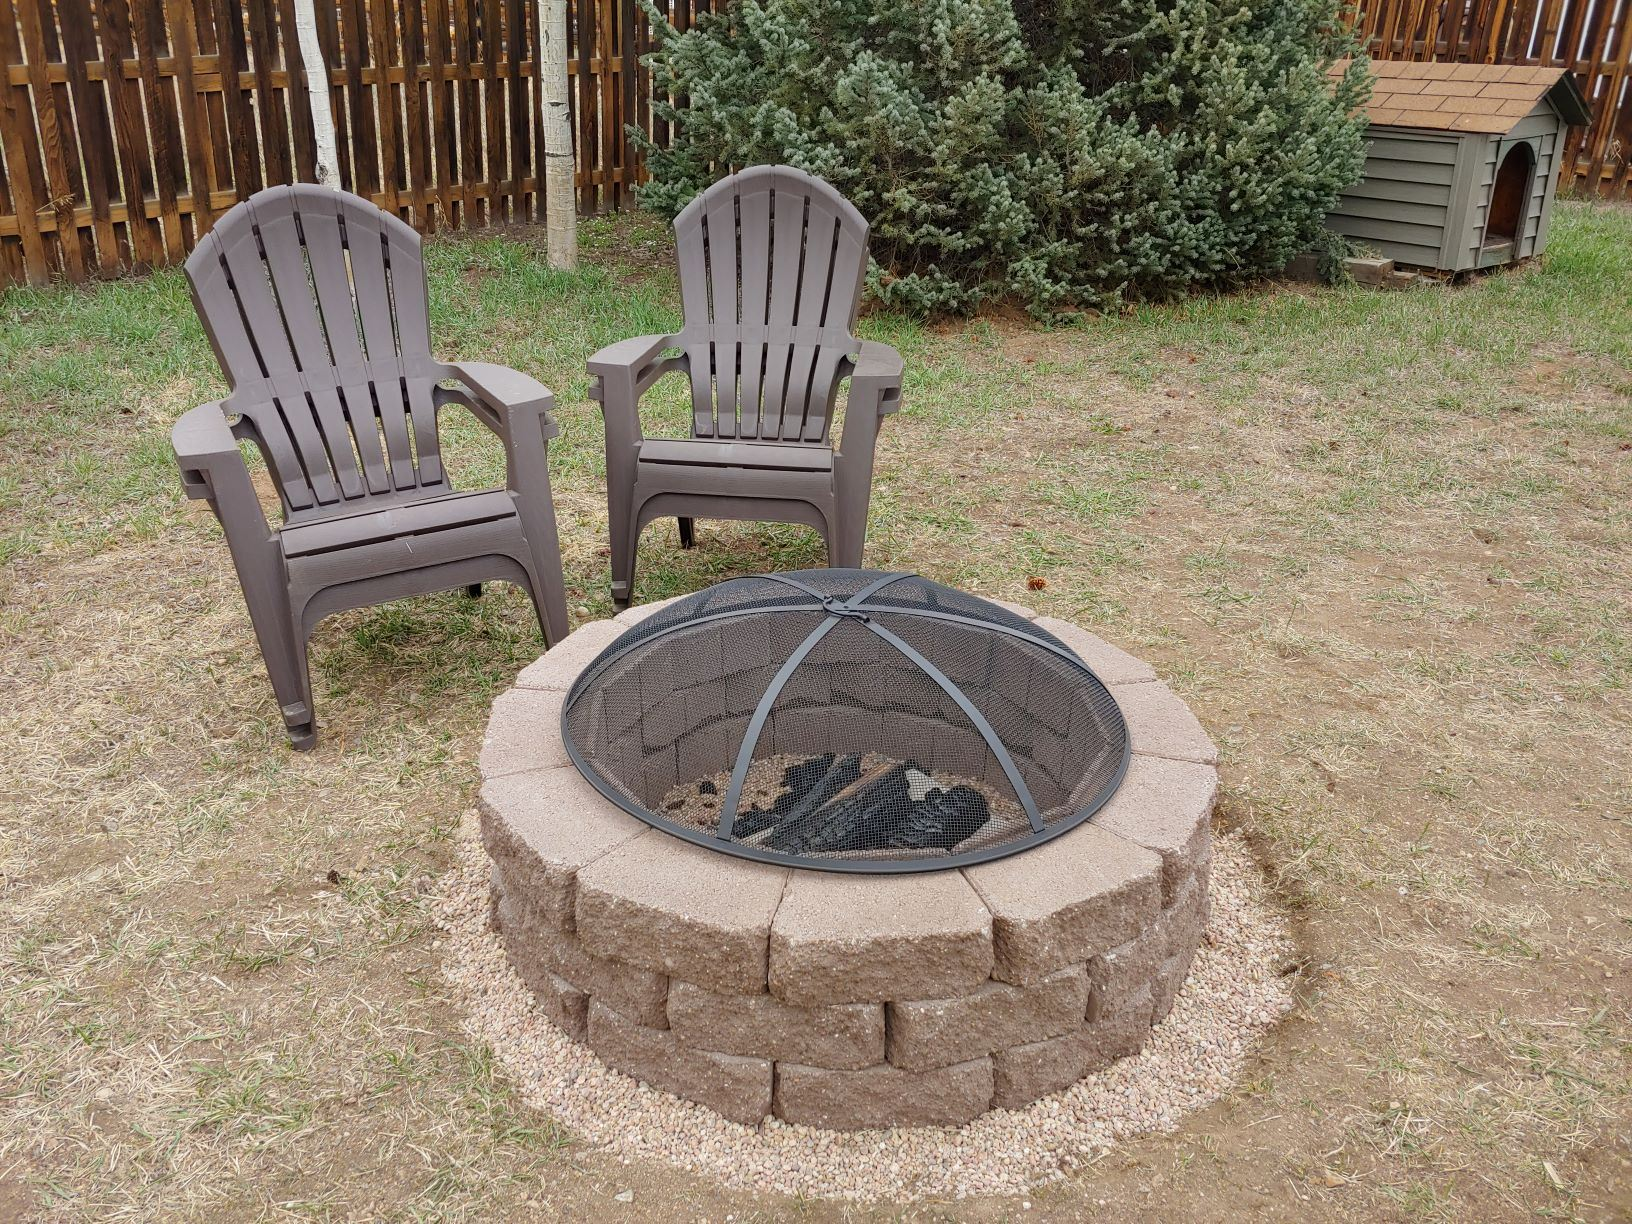 A fire device with an ember screen in a backyard.